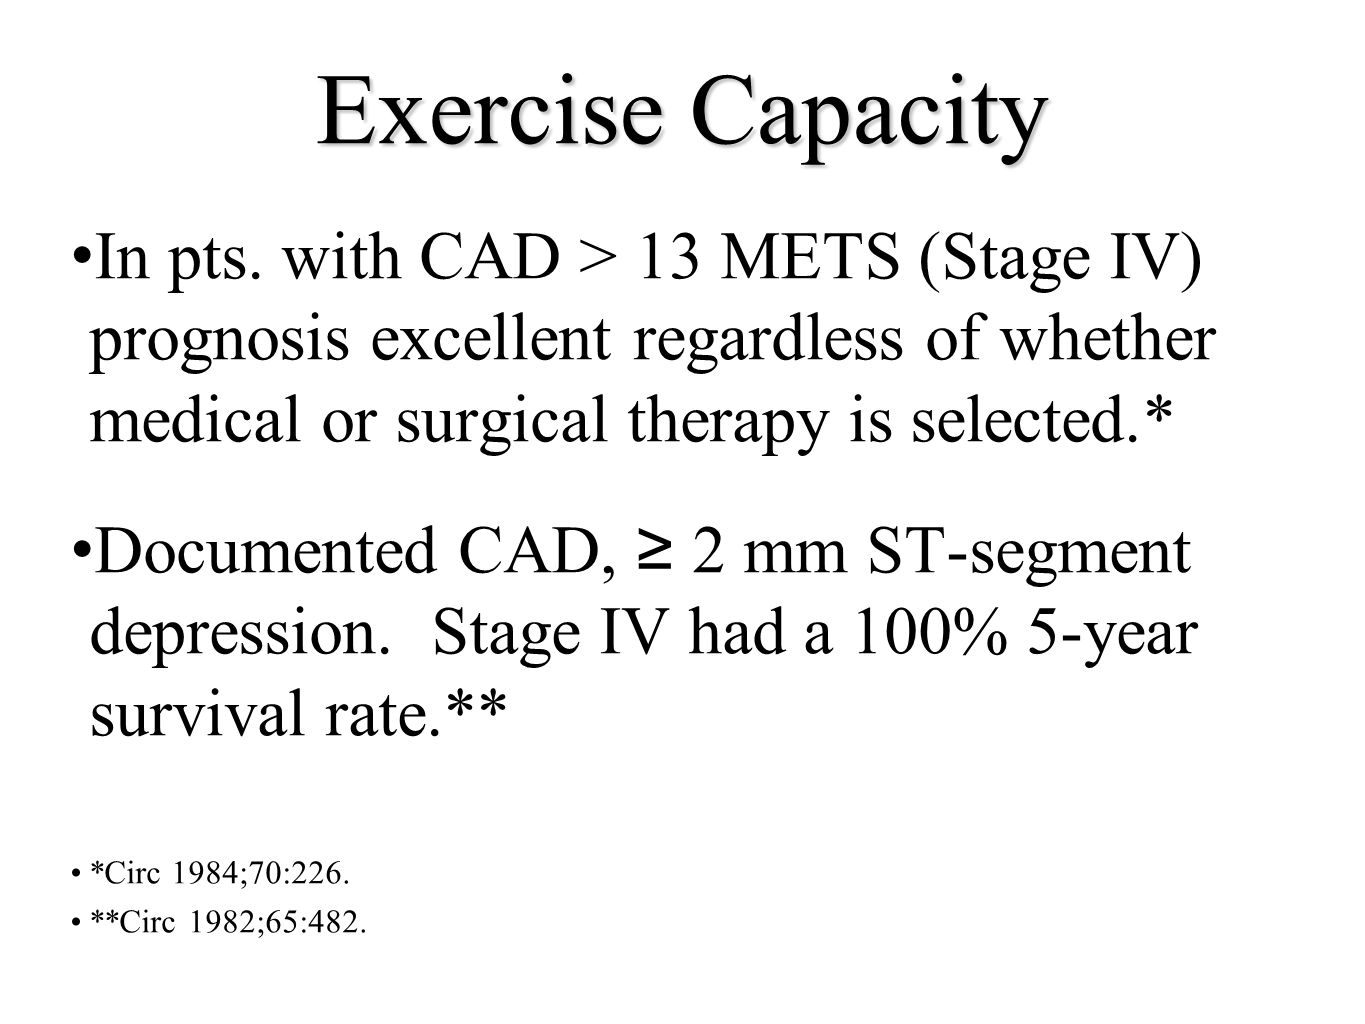 Exercise Capacity In pts. with CAD > 13 METS (Stage IV) prognosis excellent regardless of whether medical or surgical therapy is selected.*